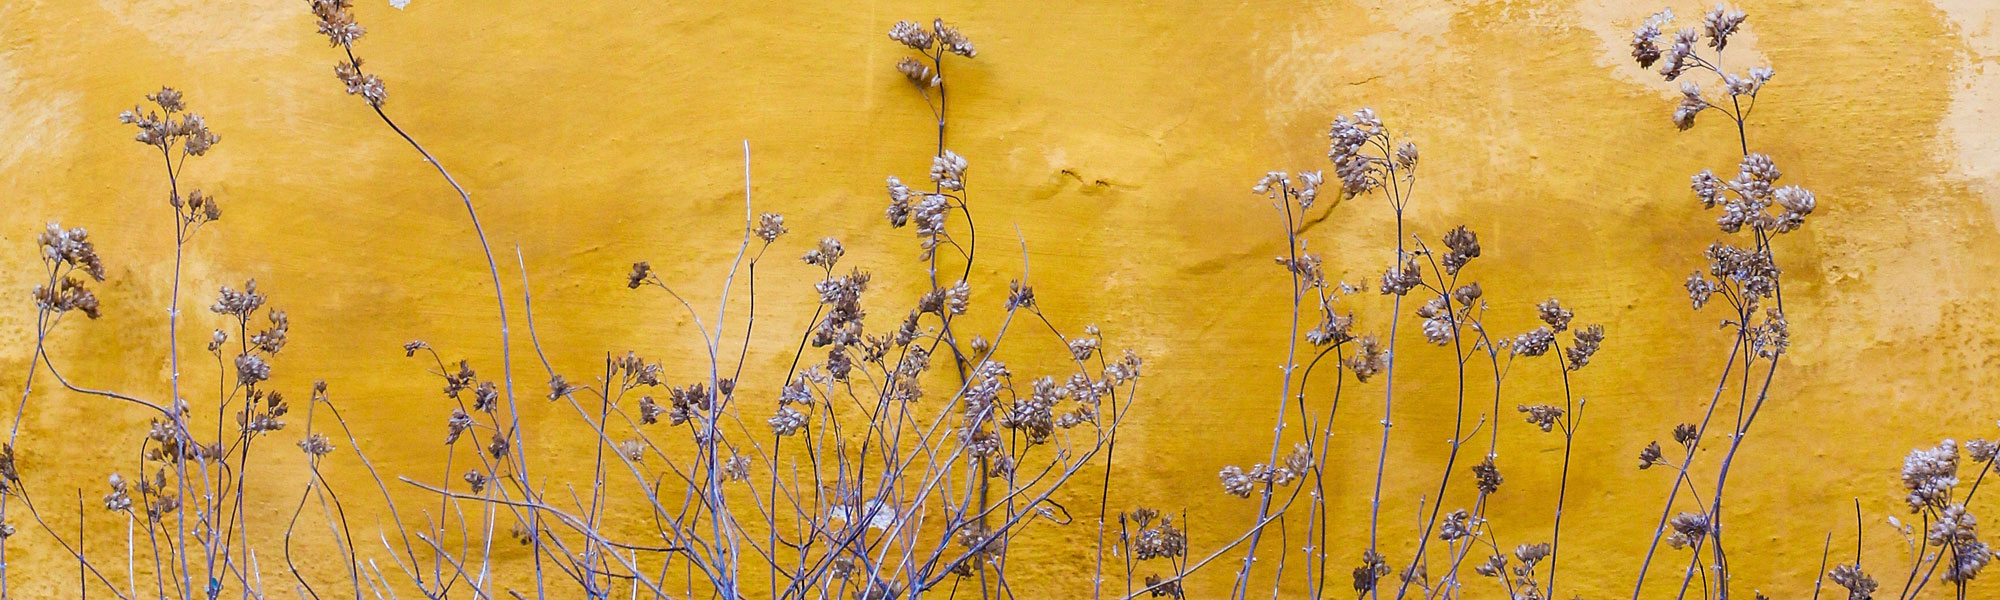 Yellow wall with plants, Photo by Mona Eendra on Unsplash